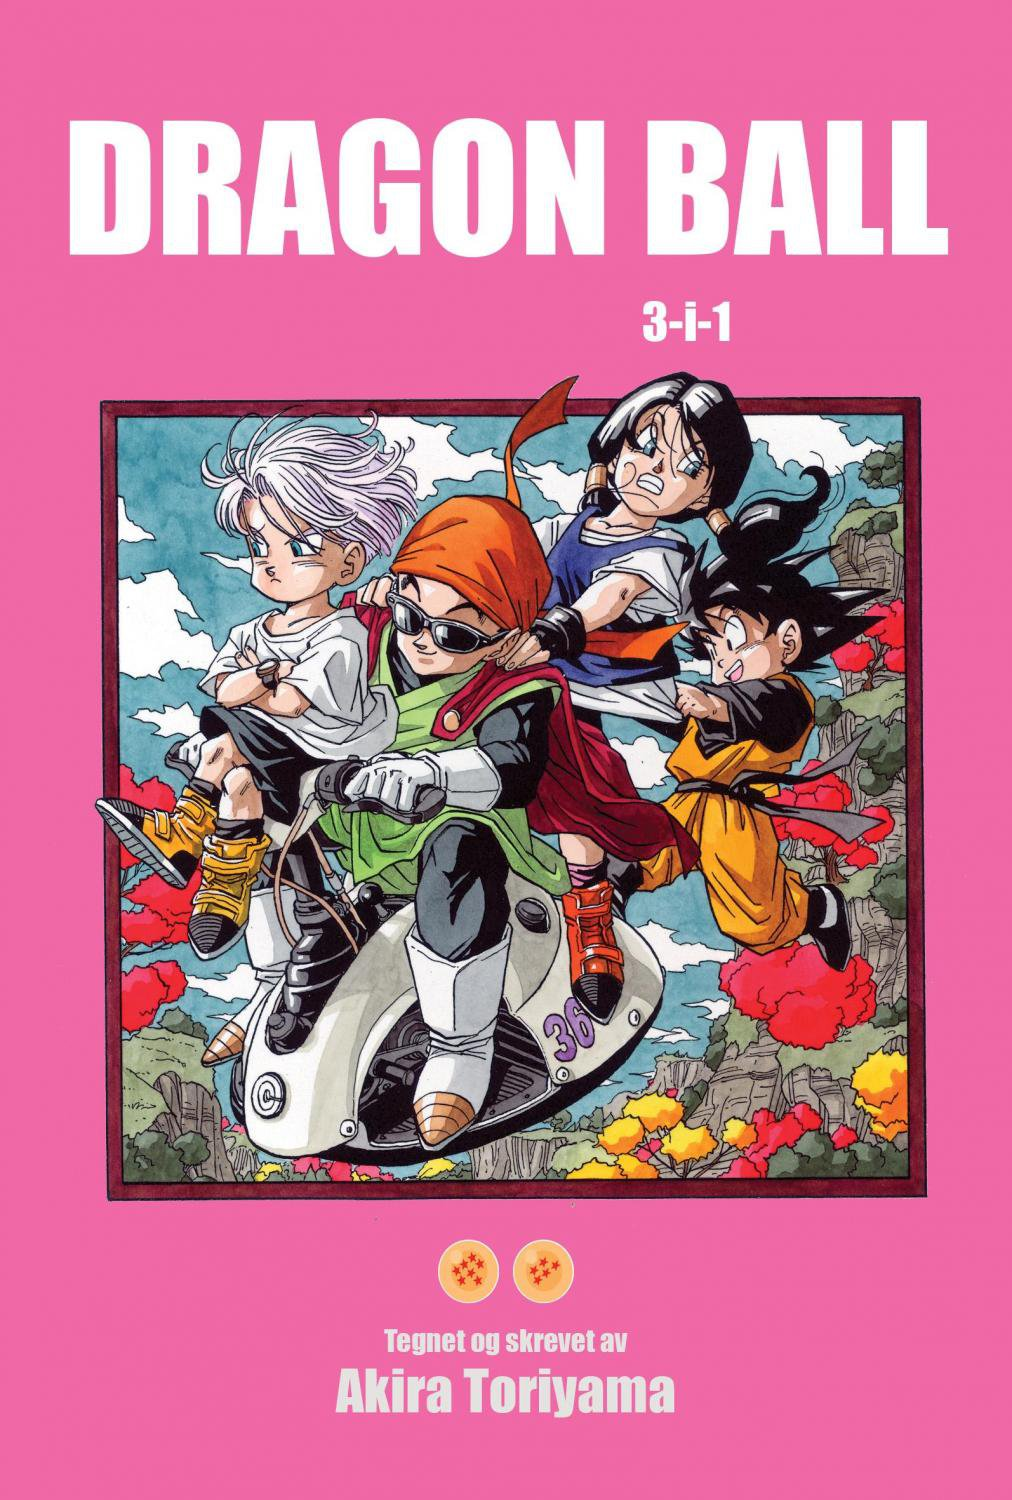 Dragon ball - 34, 35, 36